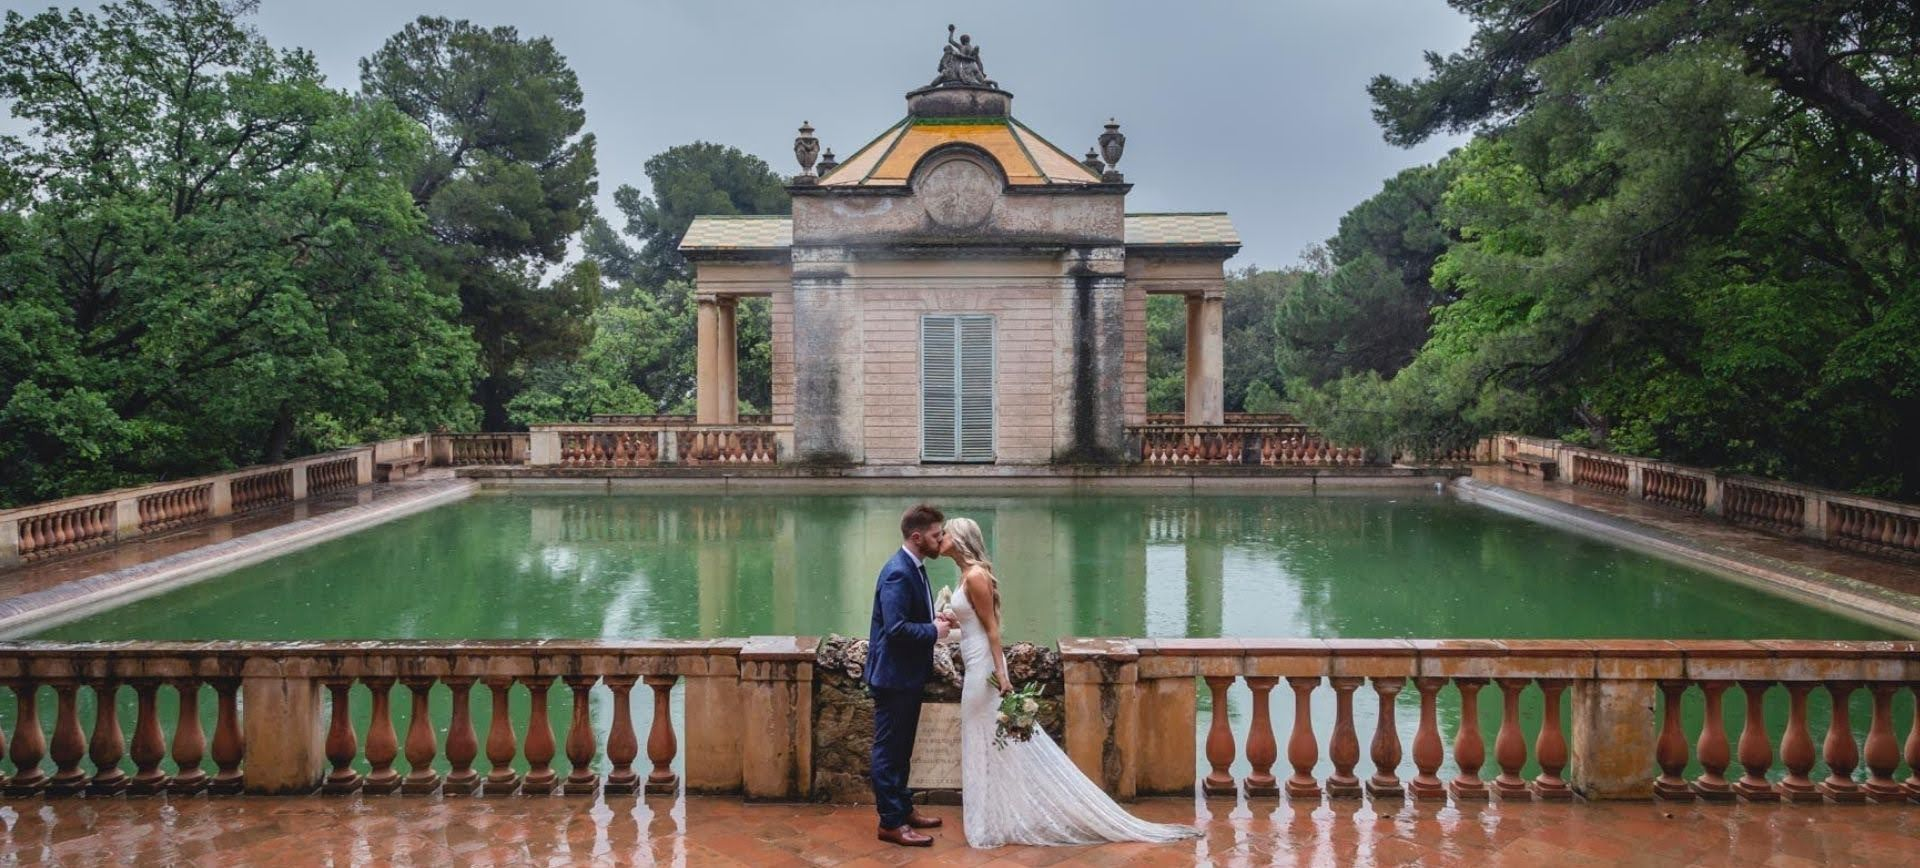 Barcelona intimate wedding in Labyrinth Park